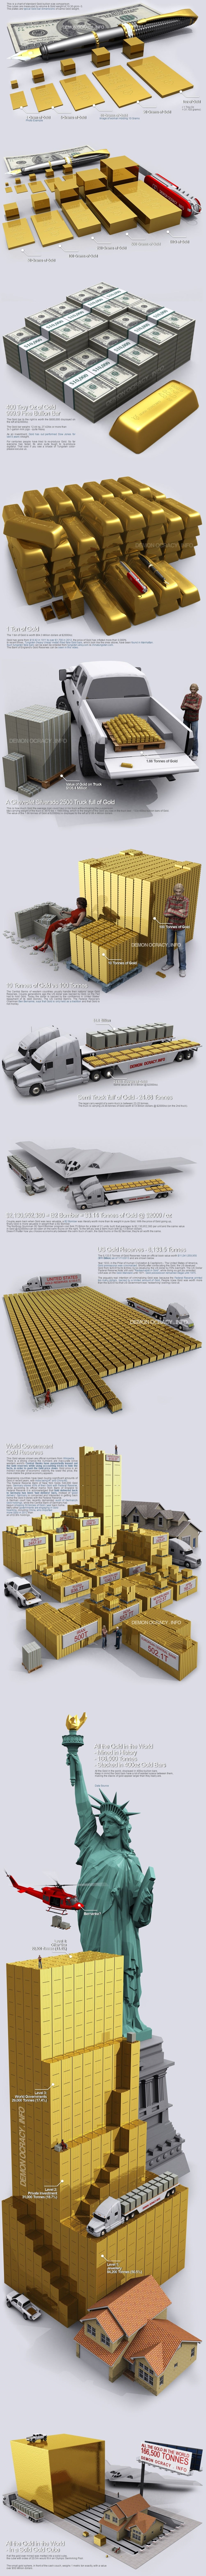 Gold - Visualized in Bullion Bars (infographic)